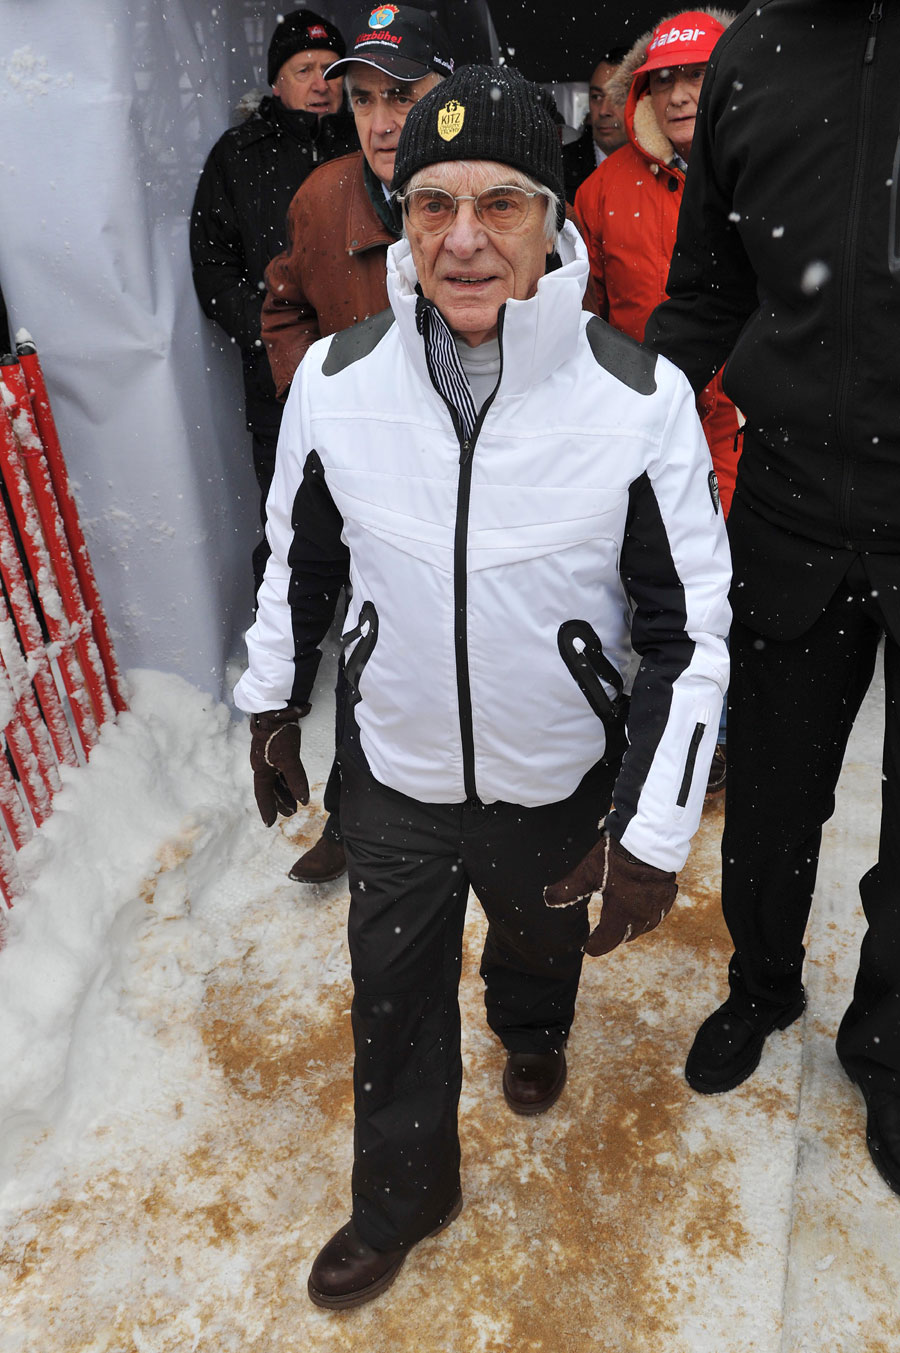 Formula One supremo Bernie Ecclestone attends the Men's Downhill World Cup race at the Streif race course Kitzbuehel, Austria